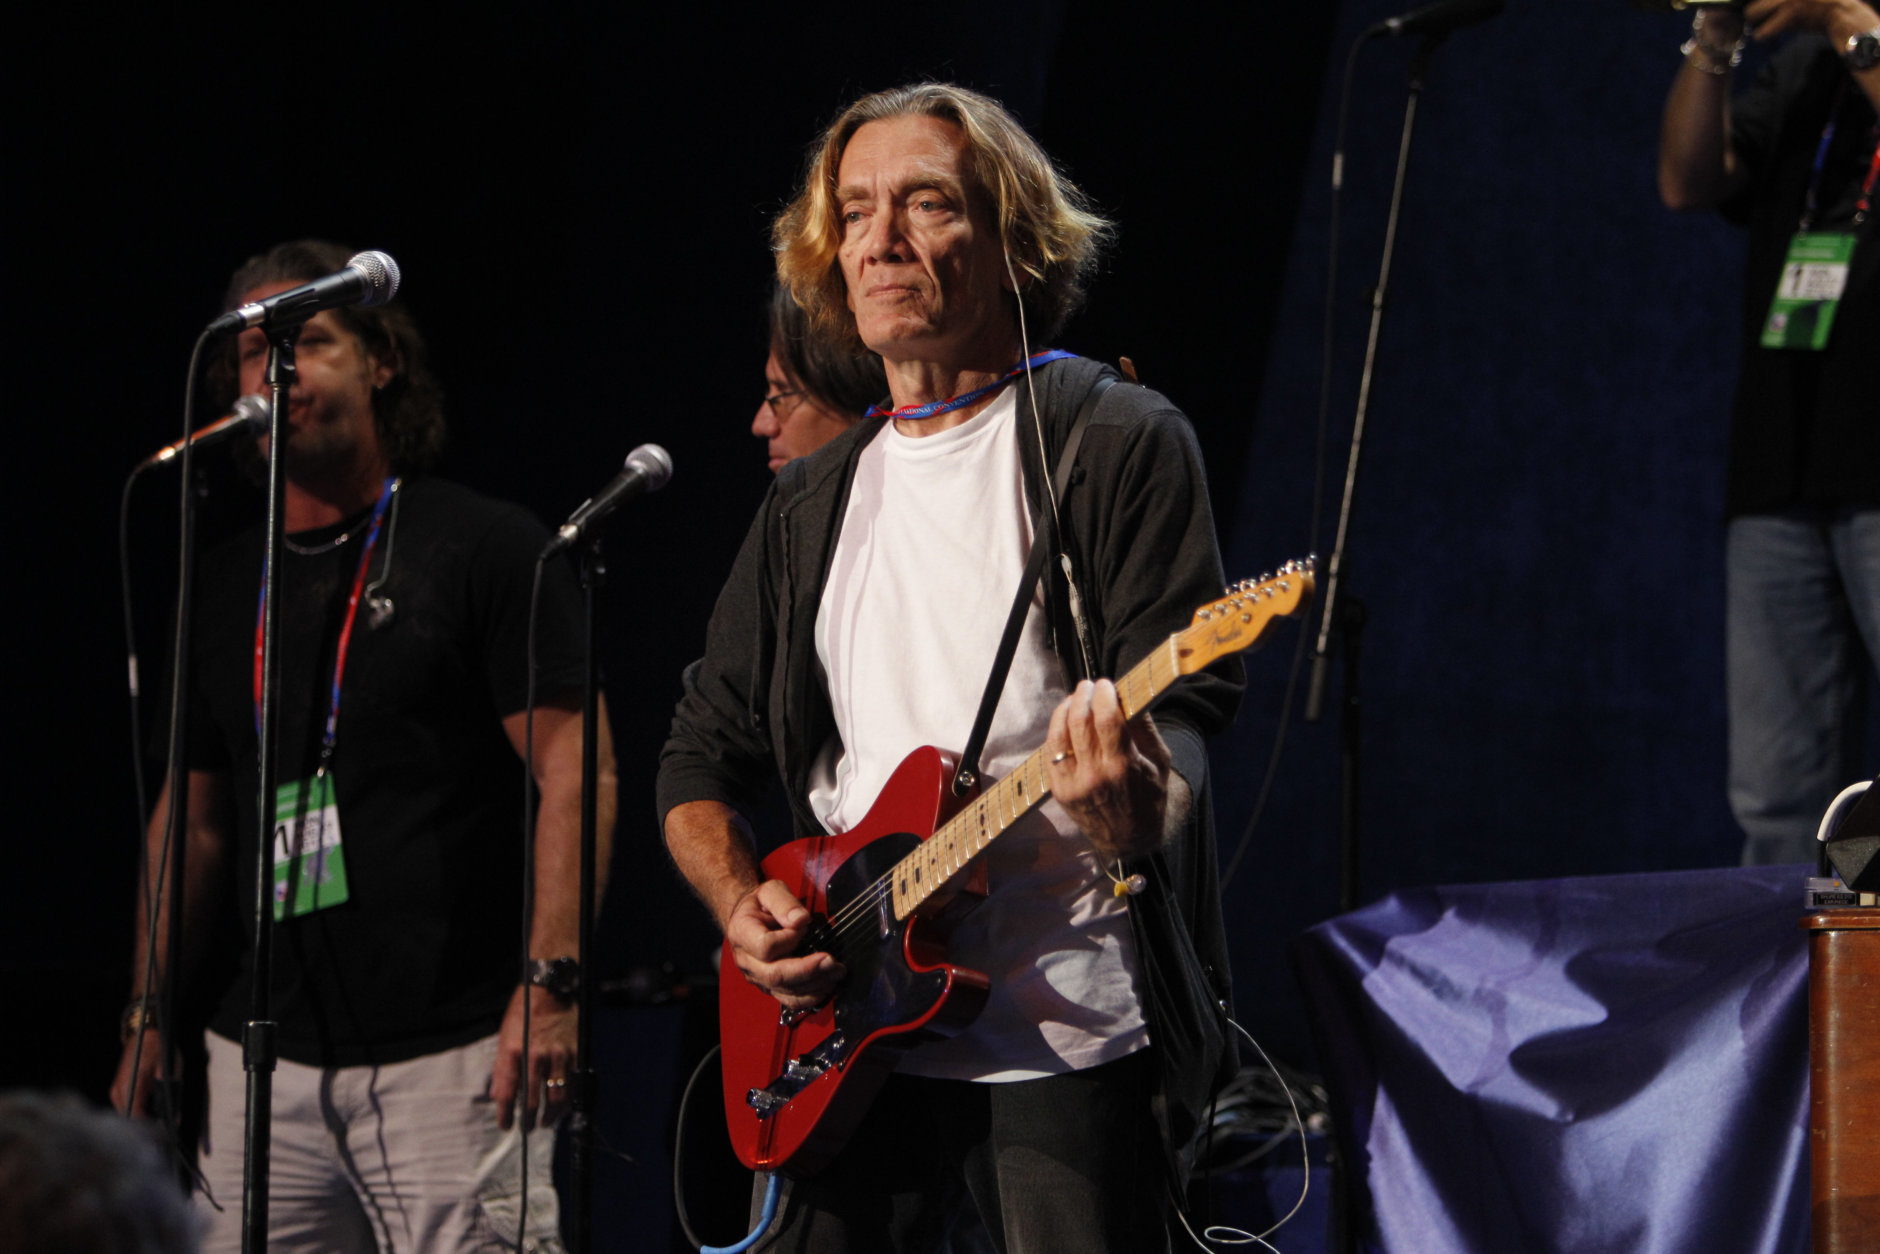 Guitarist G.E. Smith rehearses at the Republican National Convention inside of the Tampa Bay Times Forum in Tampa, Fla., on Sunday, Aug. 26, 2012. (AP Photo/Lynne Sladky)